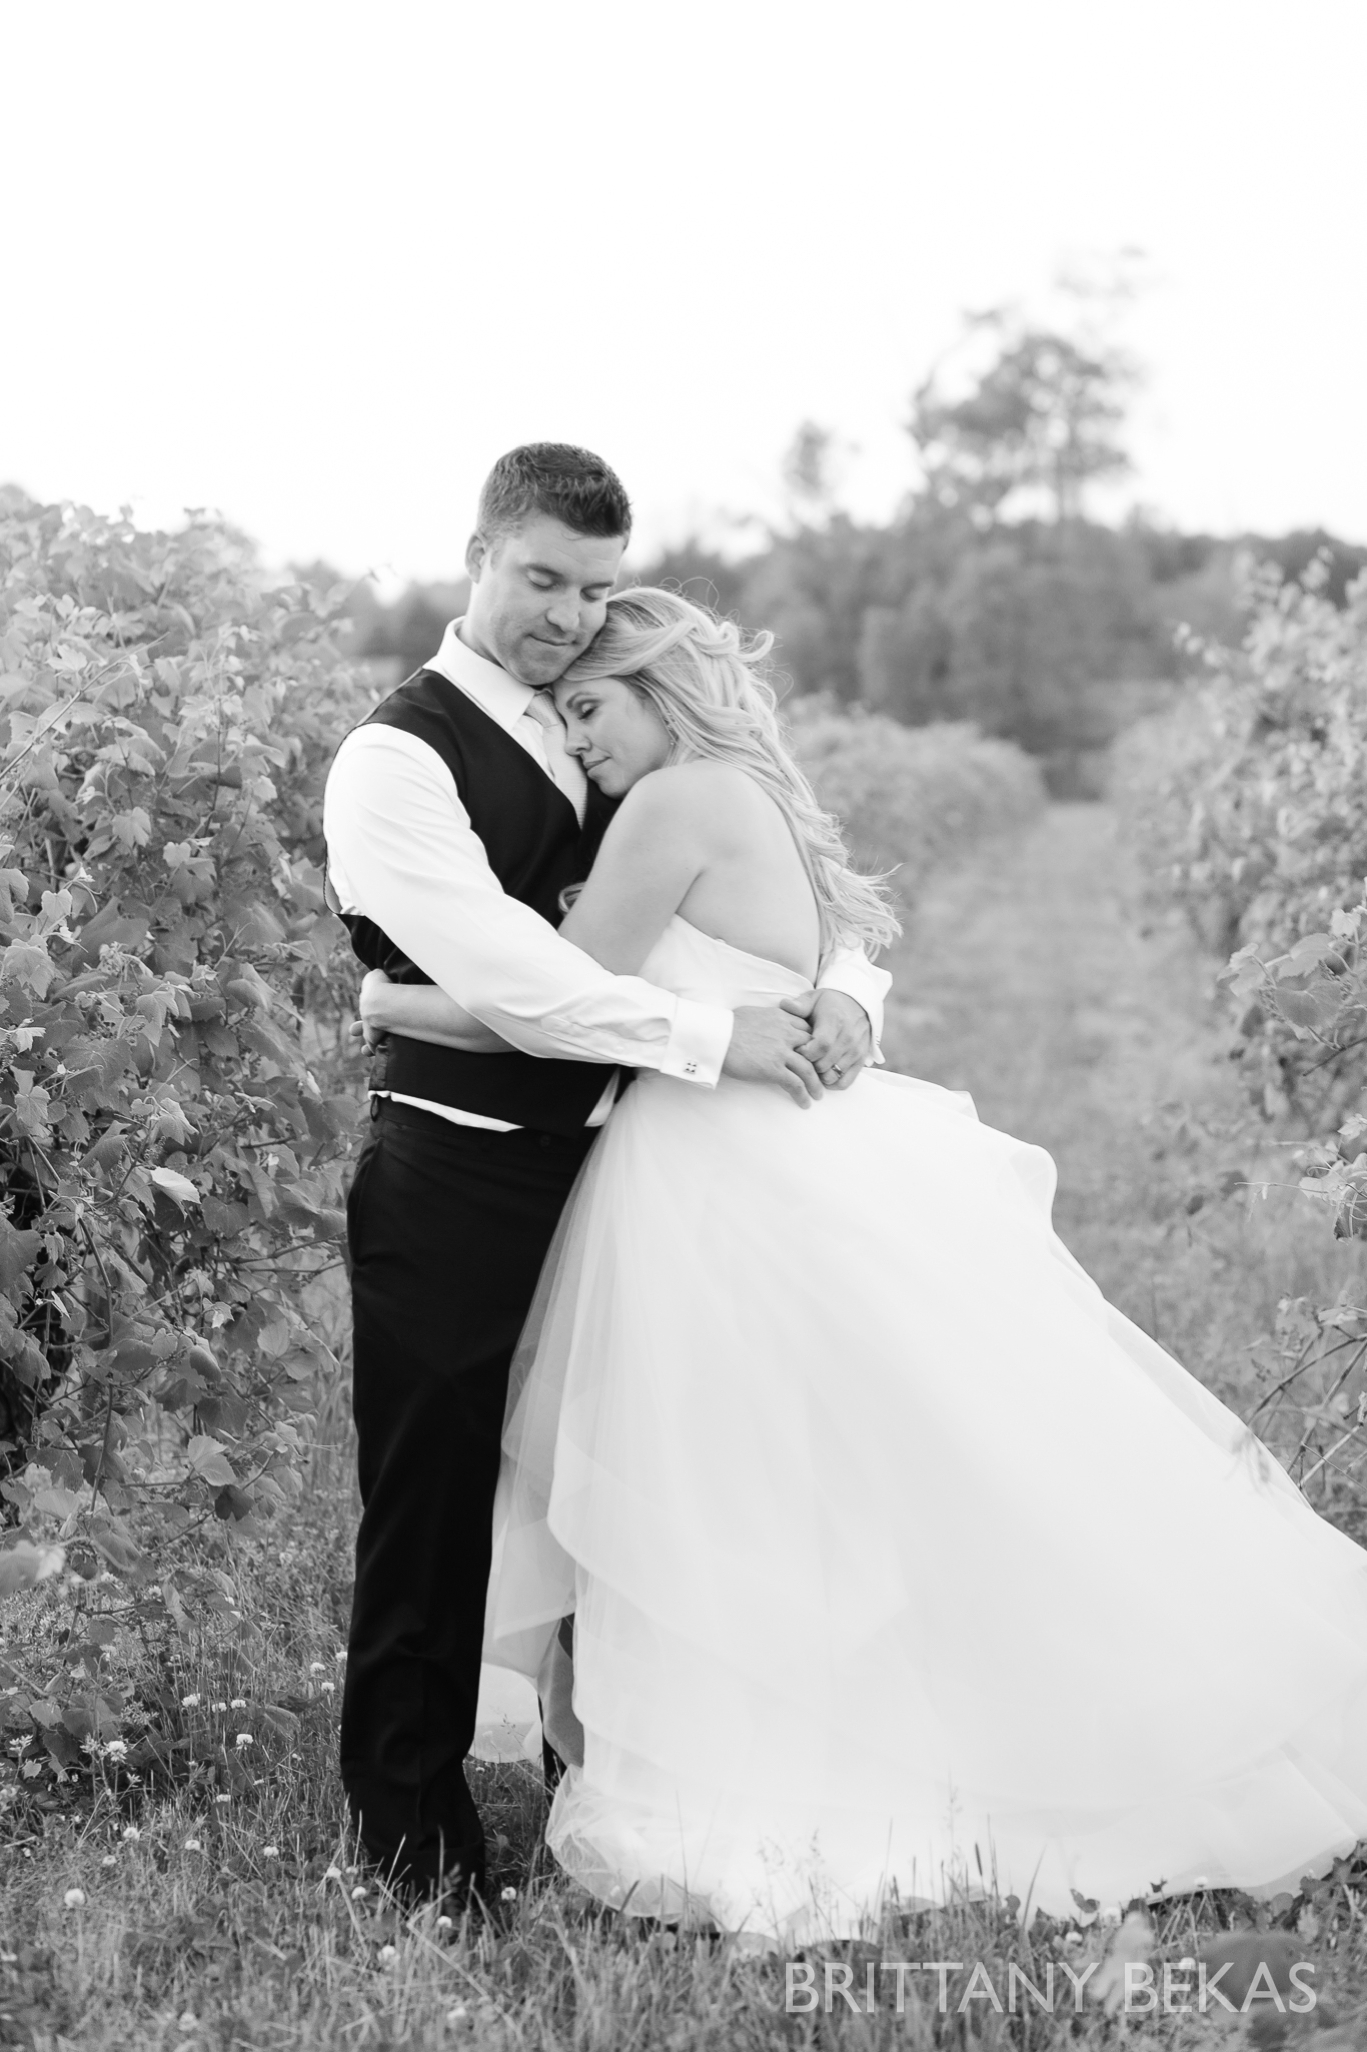 New Buffalo Wedding - Willow Harbor Vineyards Wedding Photos - Brittany Bekas Photography_0063